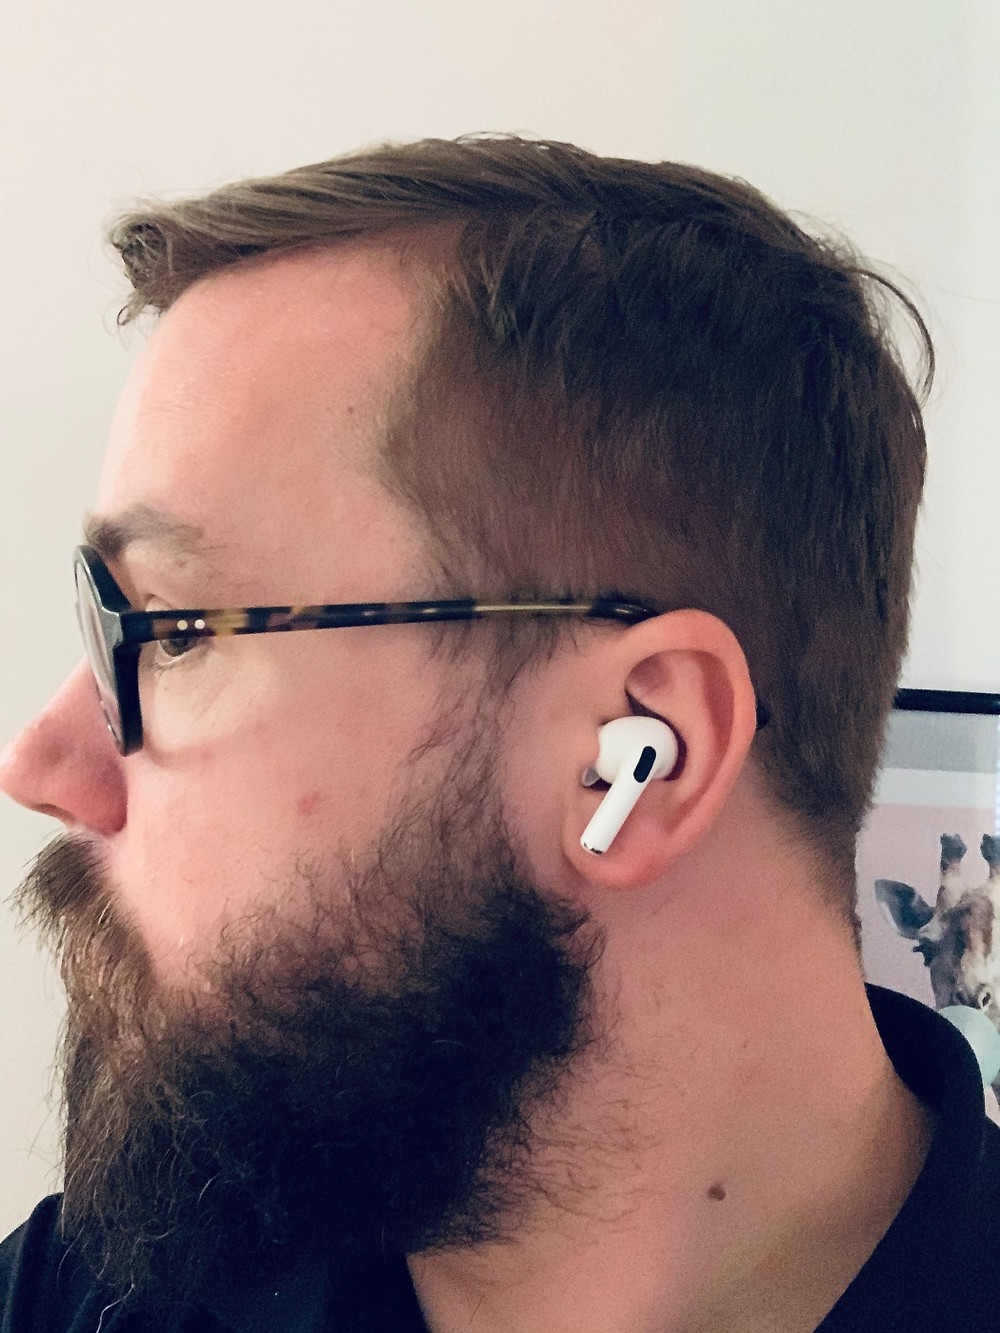 AirPods Pro in my left ear – looks good, huh?